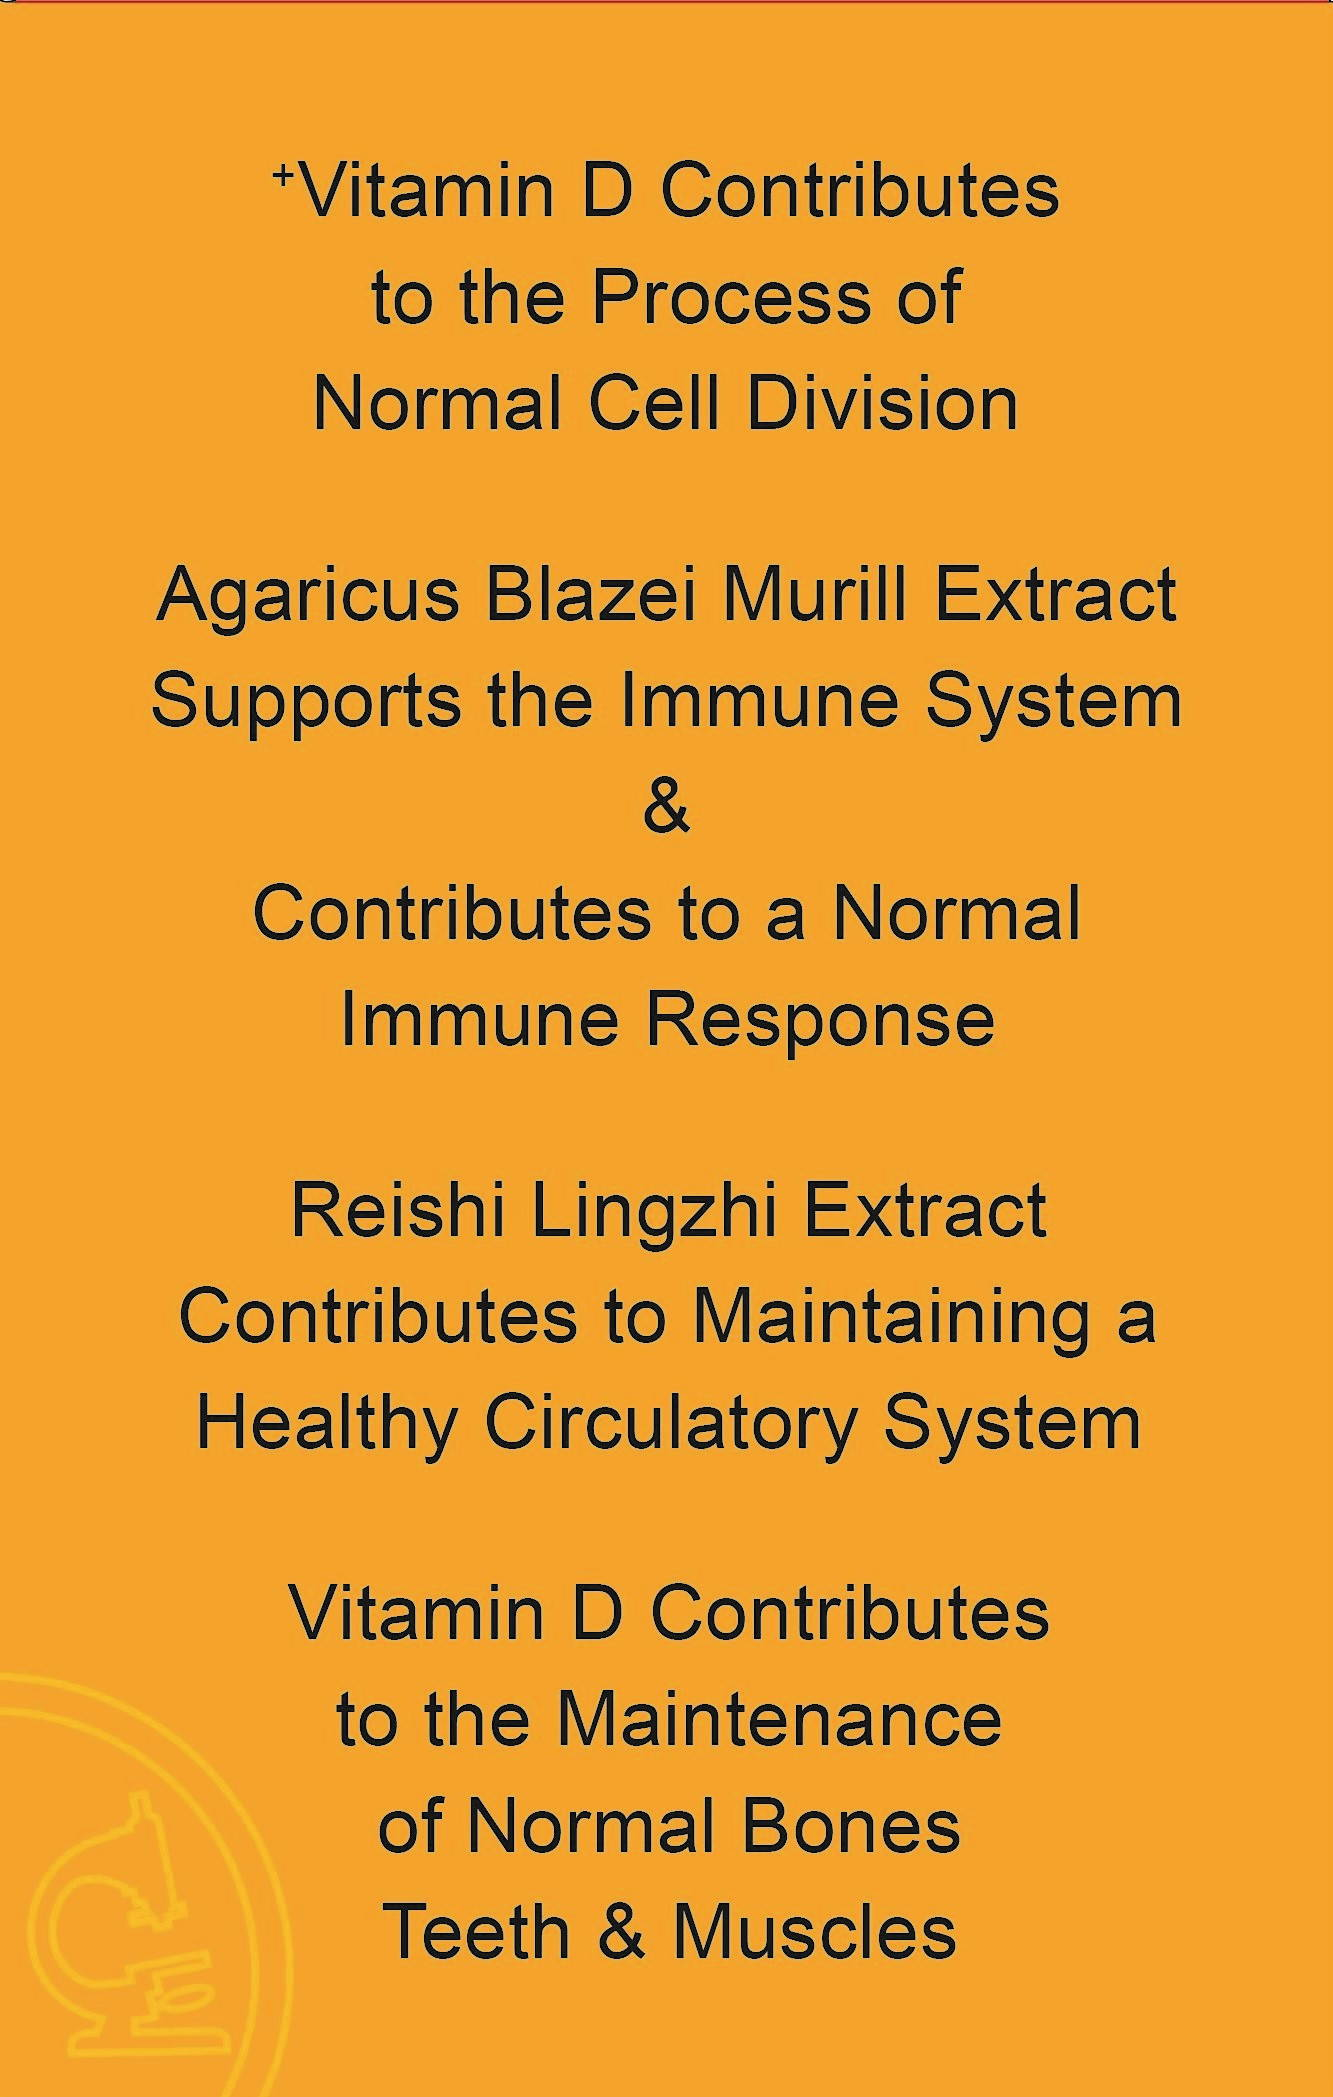 Healthy Cell Cycle 3 Benefits